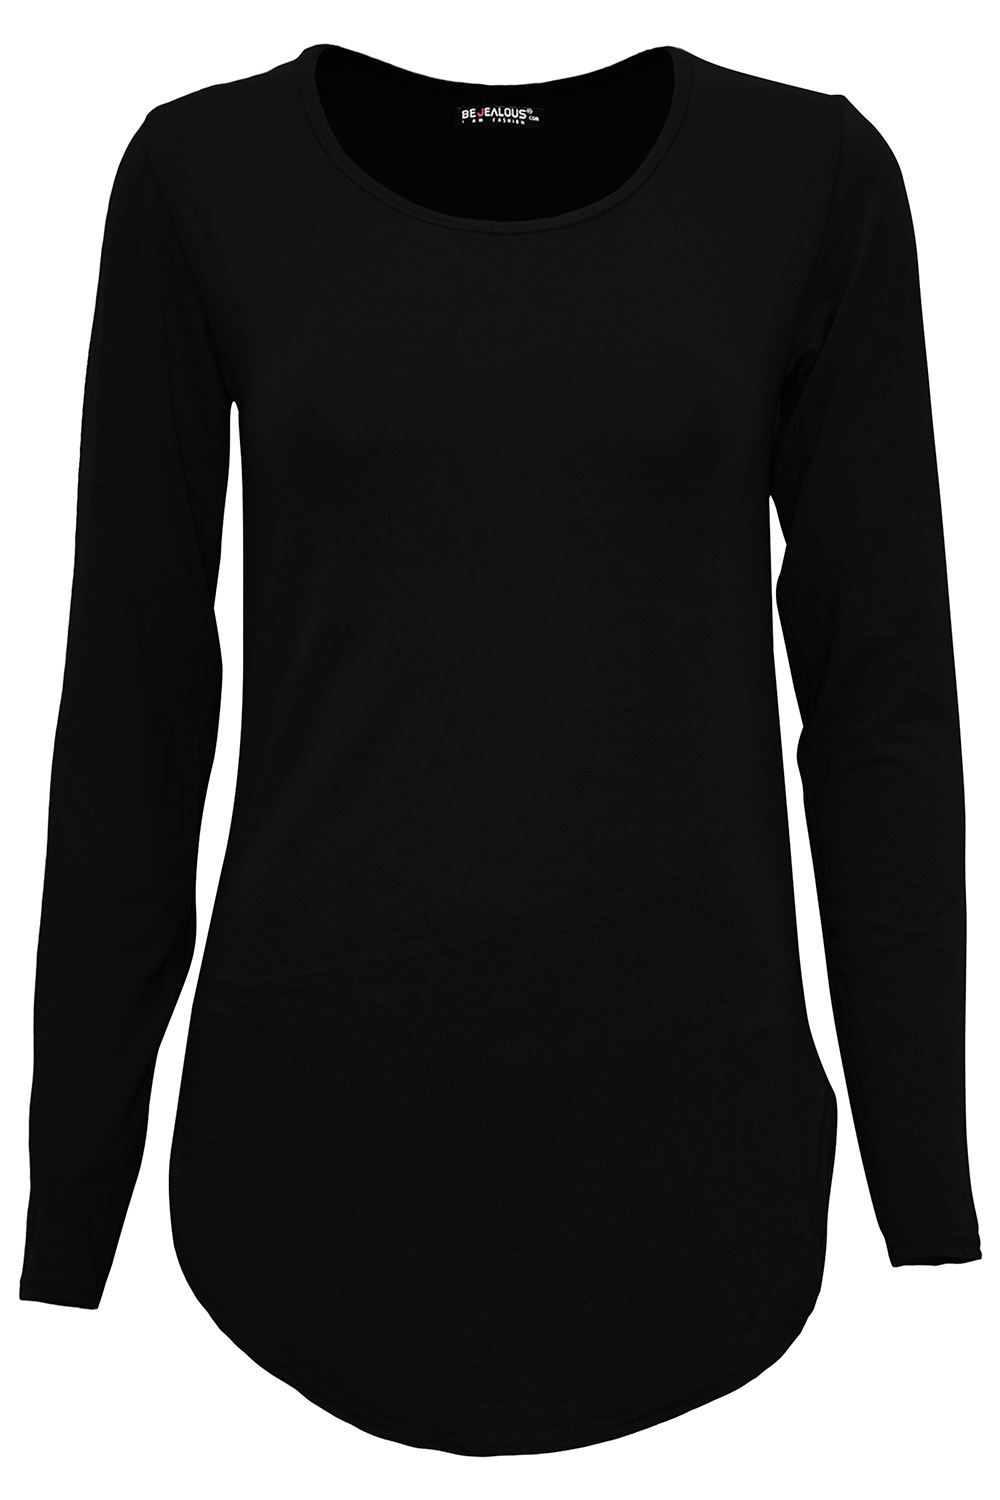 Ladies Women/'s Brown Leopard Print Long Sleeve Stretch TOP T SHIRTS COSTUME 8-16